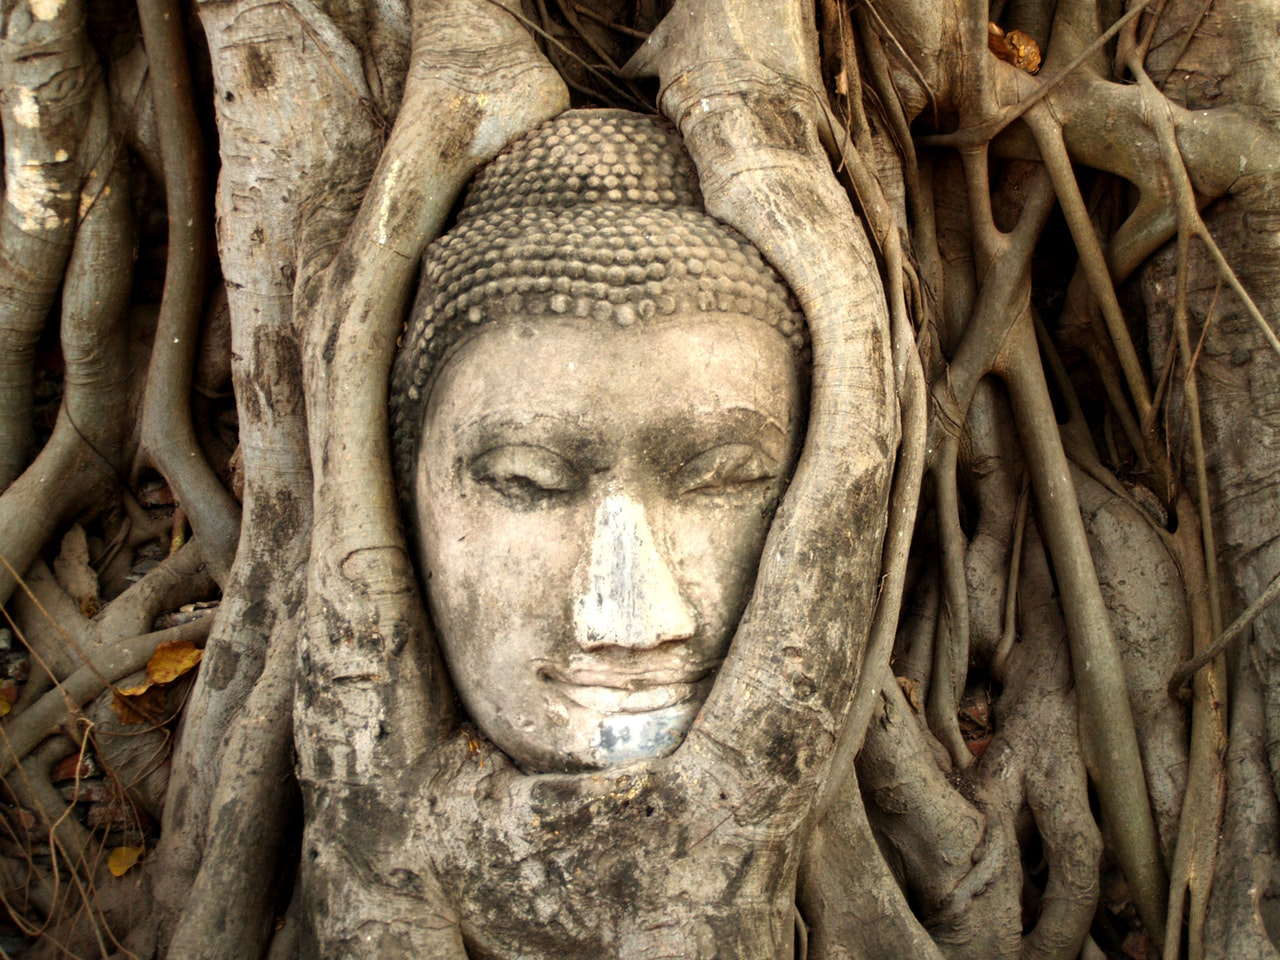 buddah face statue in roots of a tree thailand